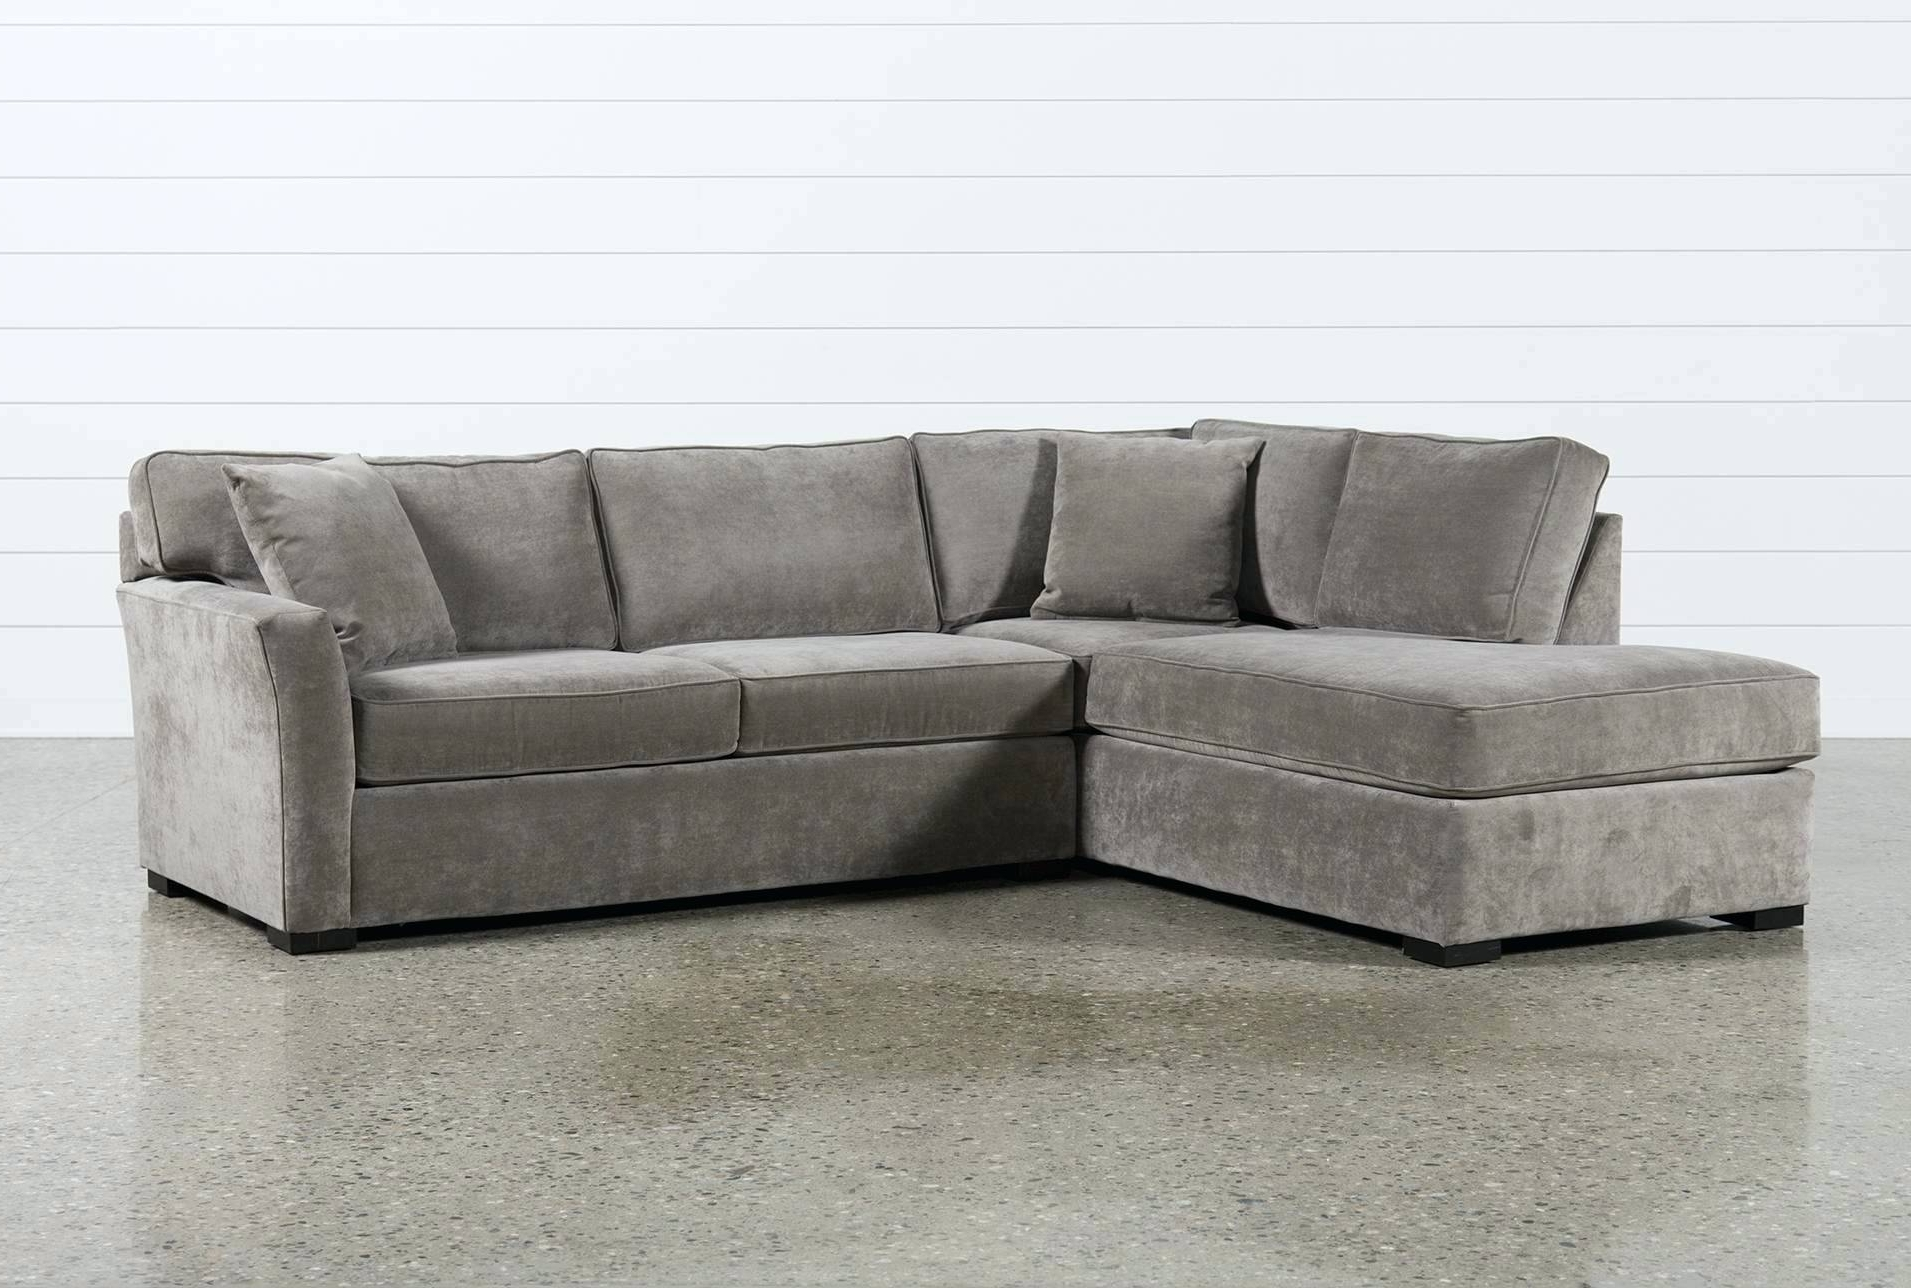 Most Current Nashville Sectional Sofas Inside Sleep Sofas Sleeper Sectional Rooms To Go Sofa For Sale In (View 5 of 15)